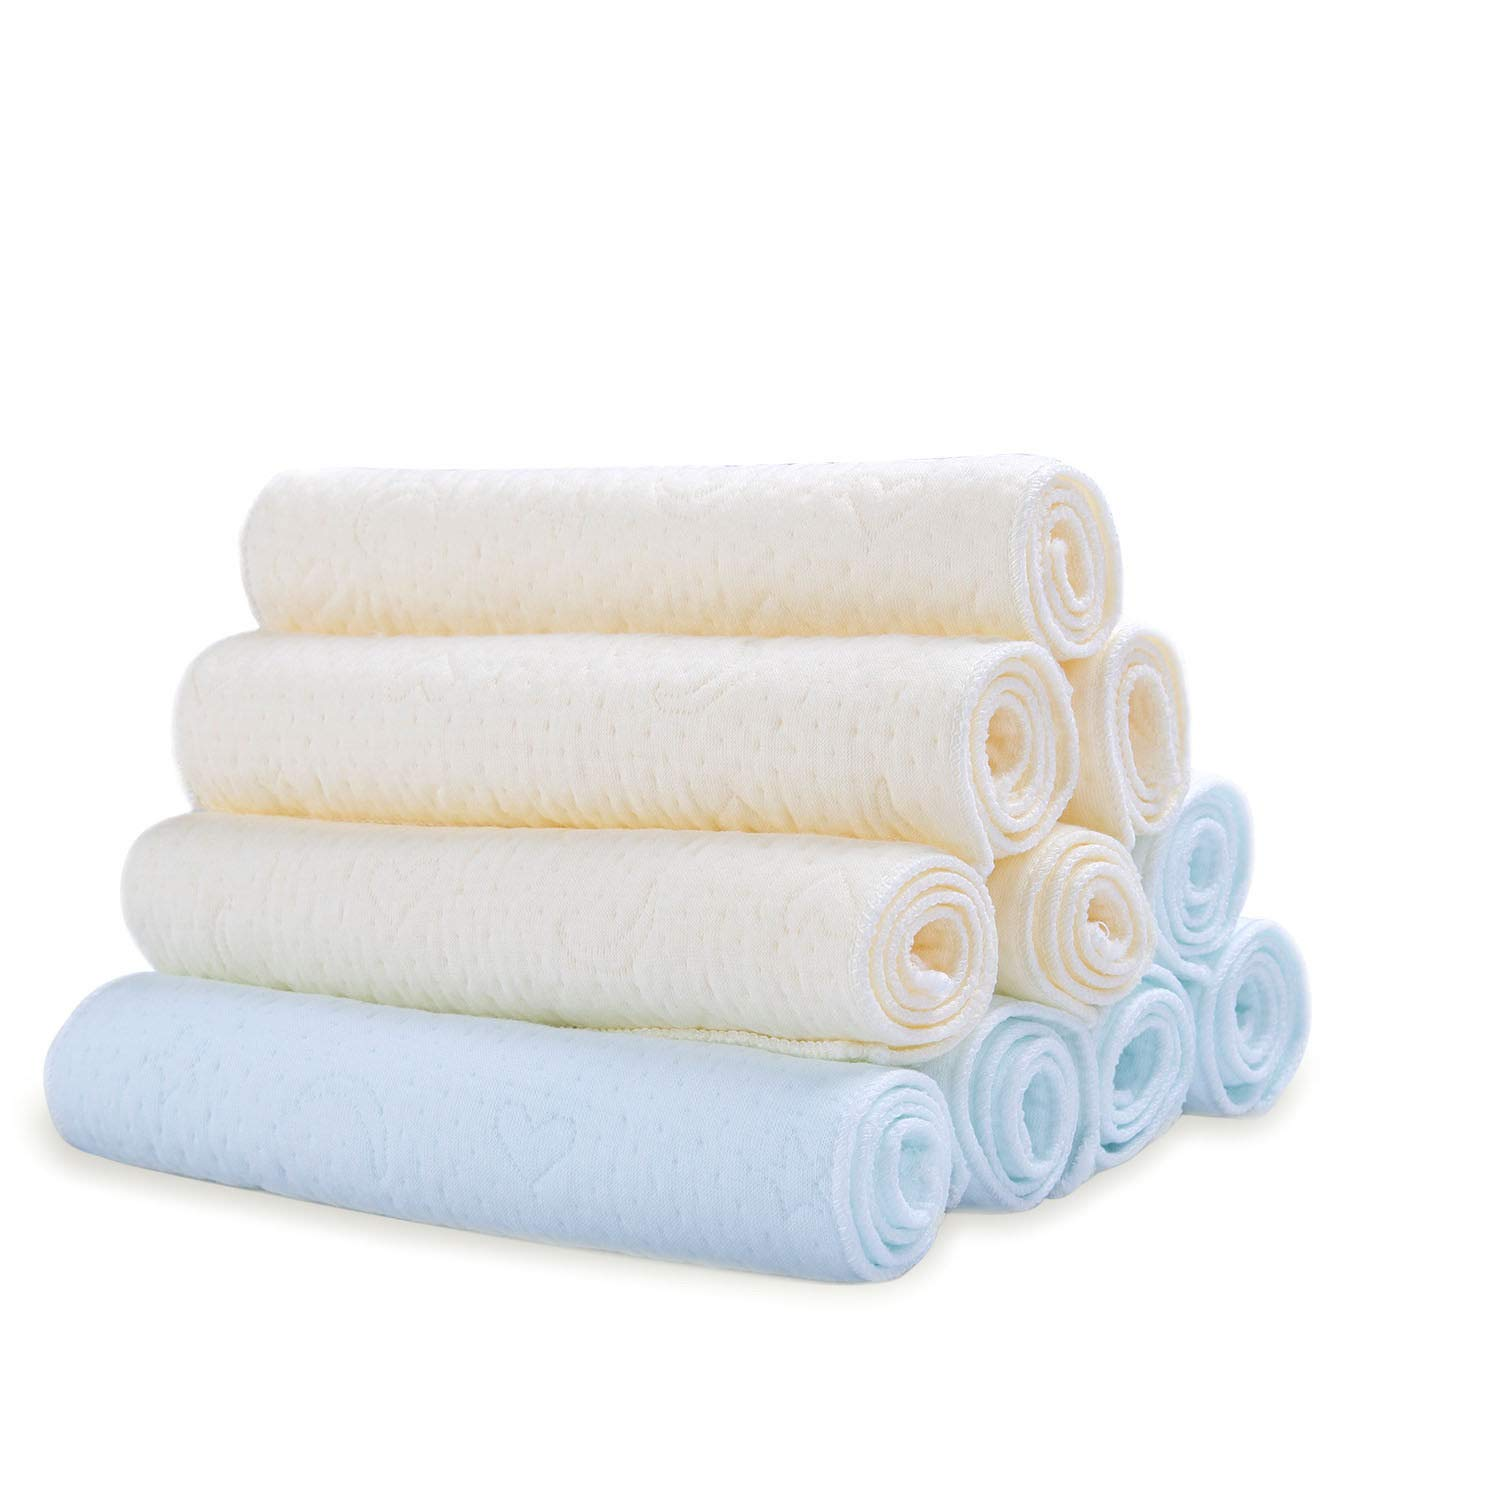 Cotton Baby Washcloths 10 Pack, Reusable Baby Wipes, Extra Soft Face/Shower Towels for Sensitive Skin Makimoo